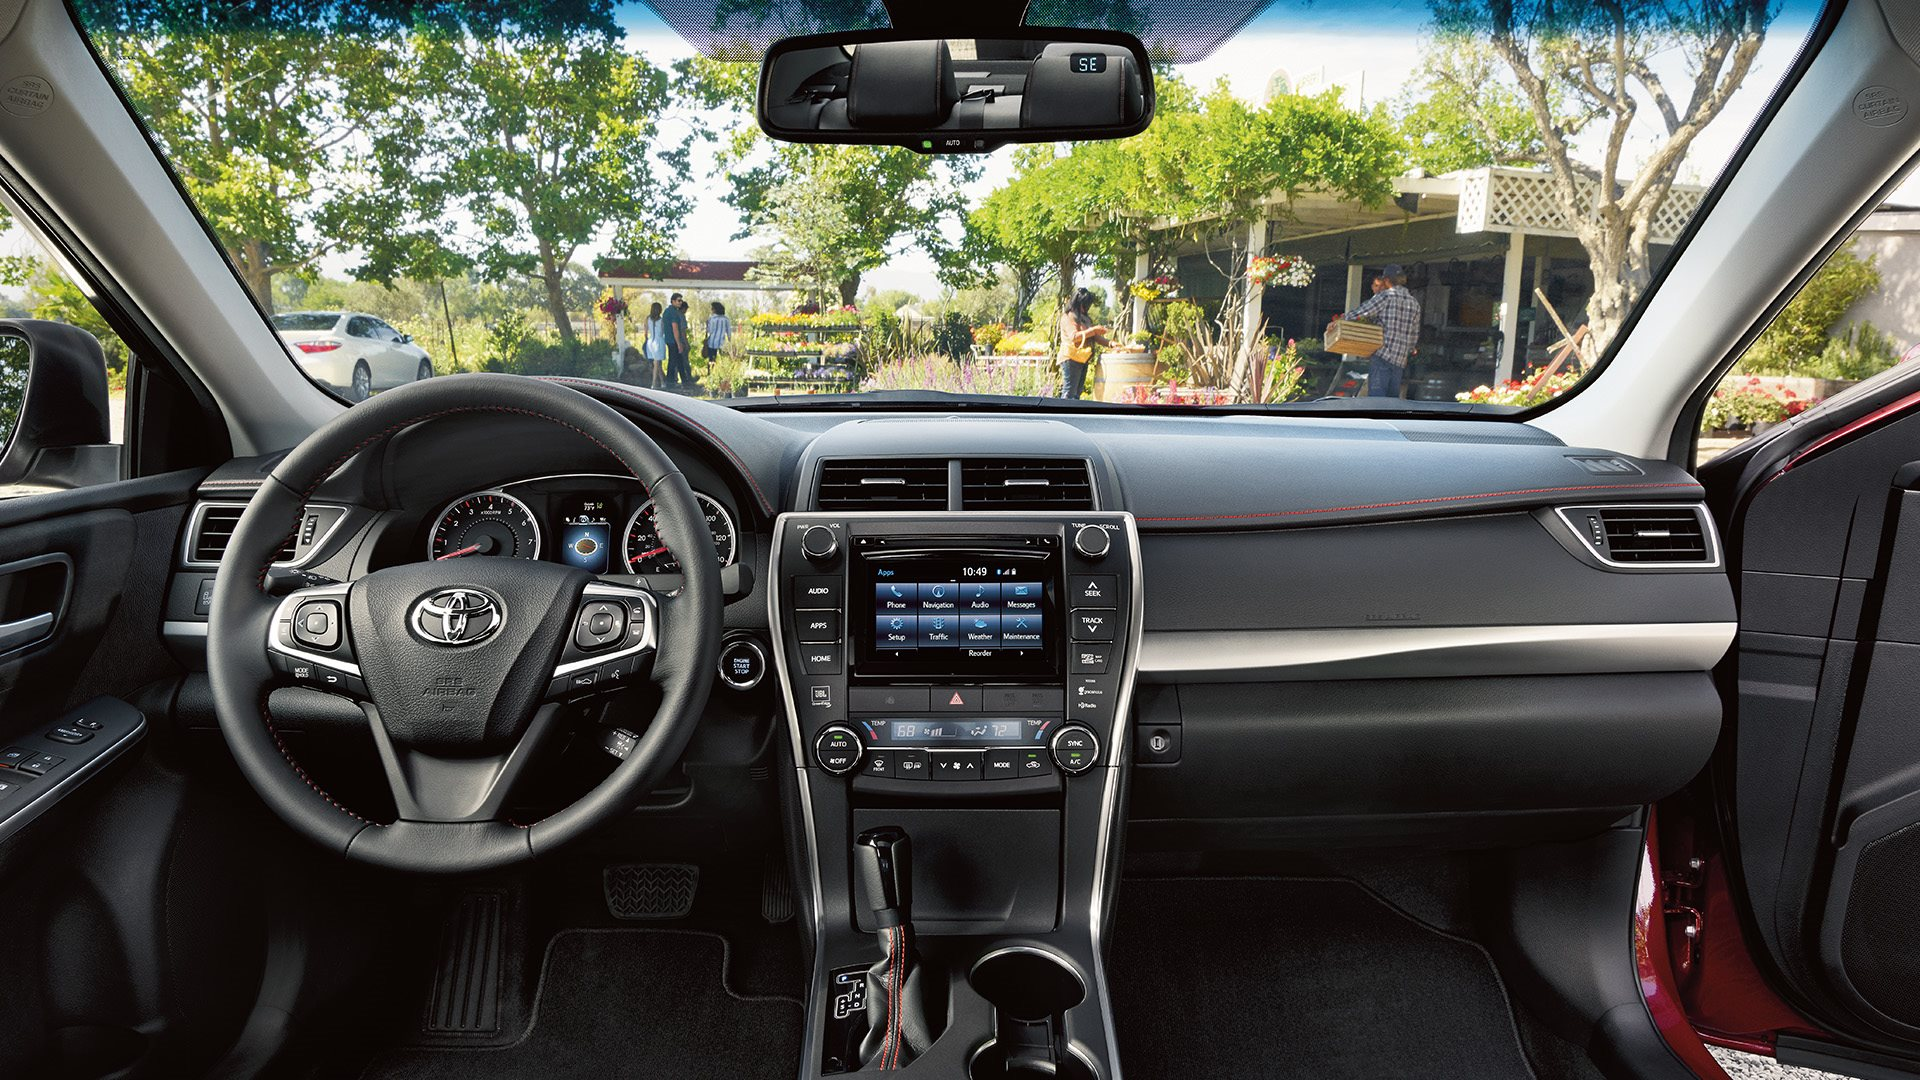 Discover the 2017 Camry at Andrew Toyota.